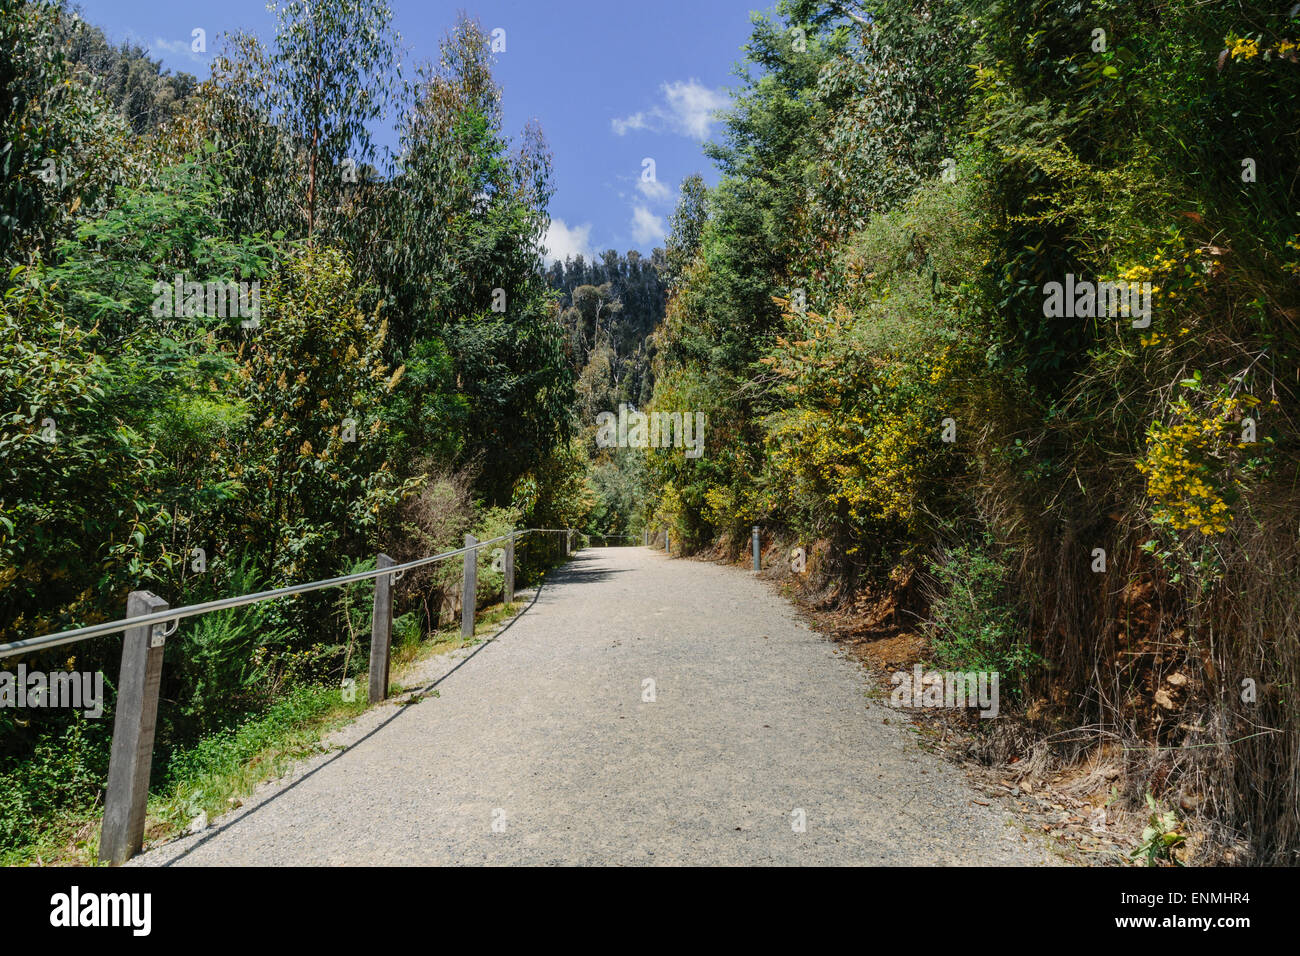 Walking trail to Steavenson Falls near Marysville showing regrowth in surrounding forest after devastating bushfires - Stock Image